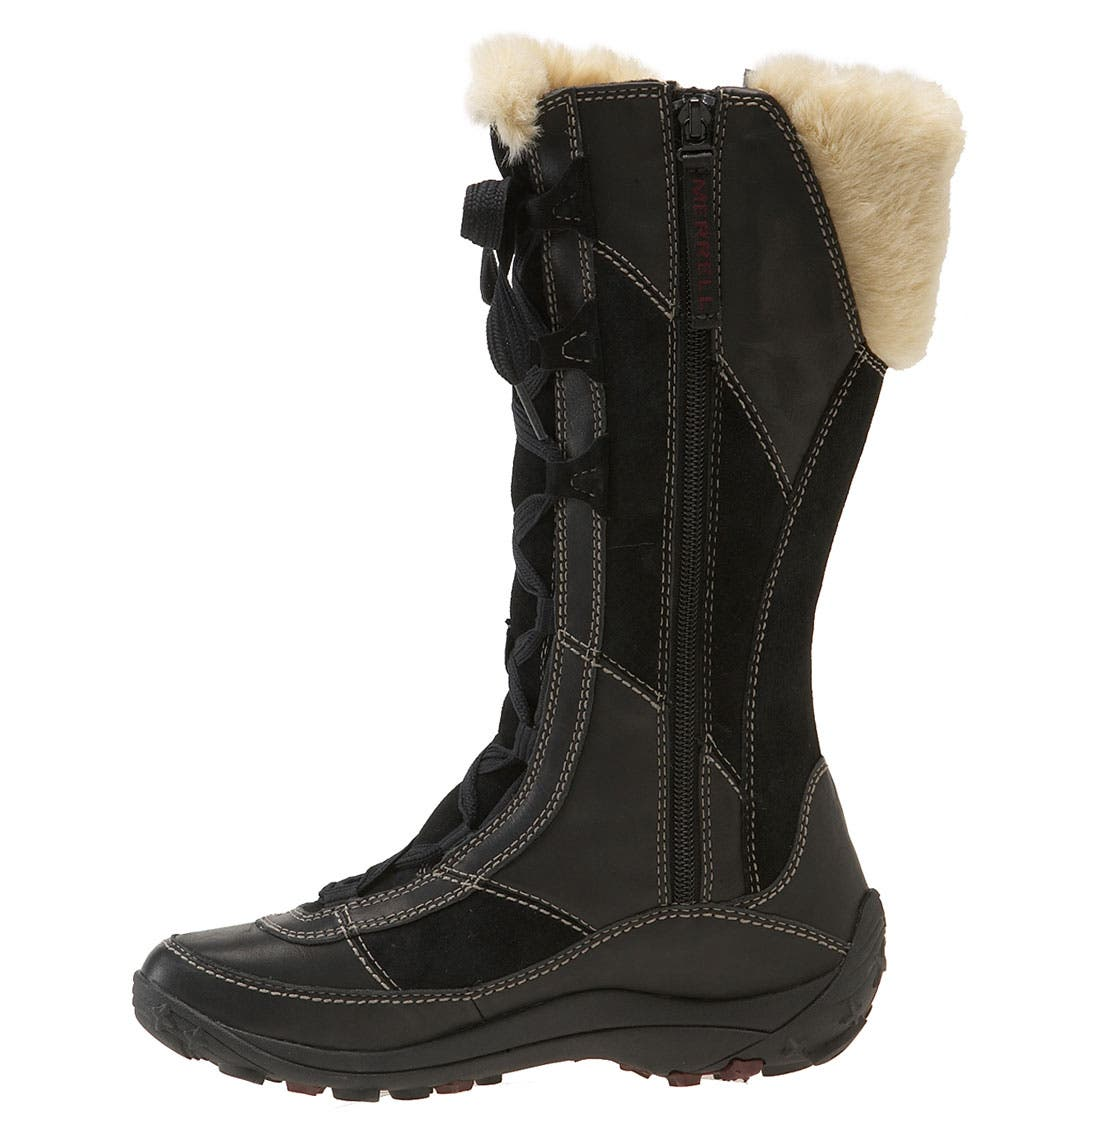 'Prevoz' Waterproof Tall Boot,                             Alternate thumbnail 4, color,                             001